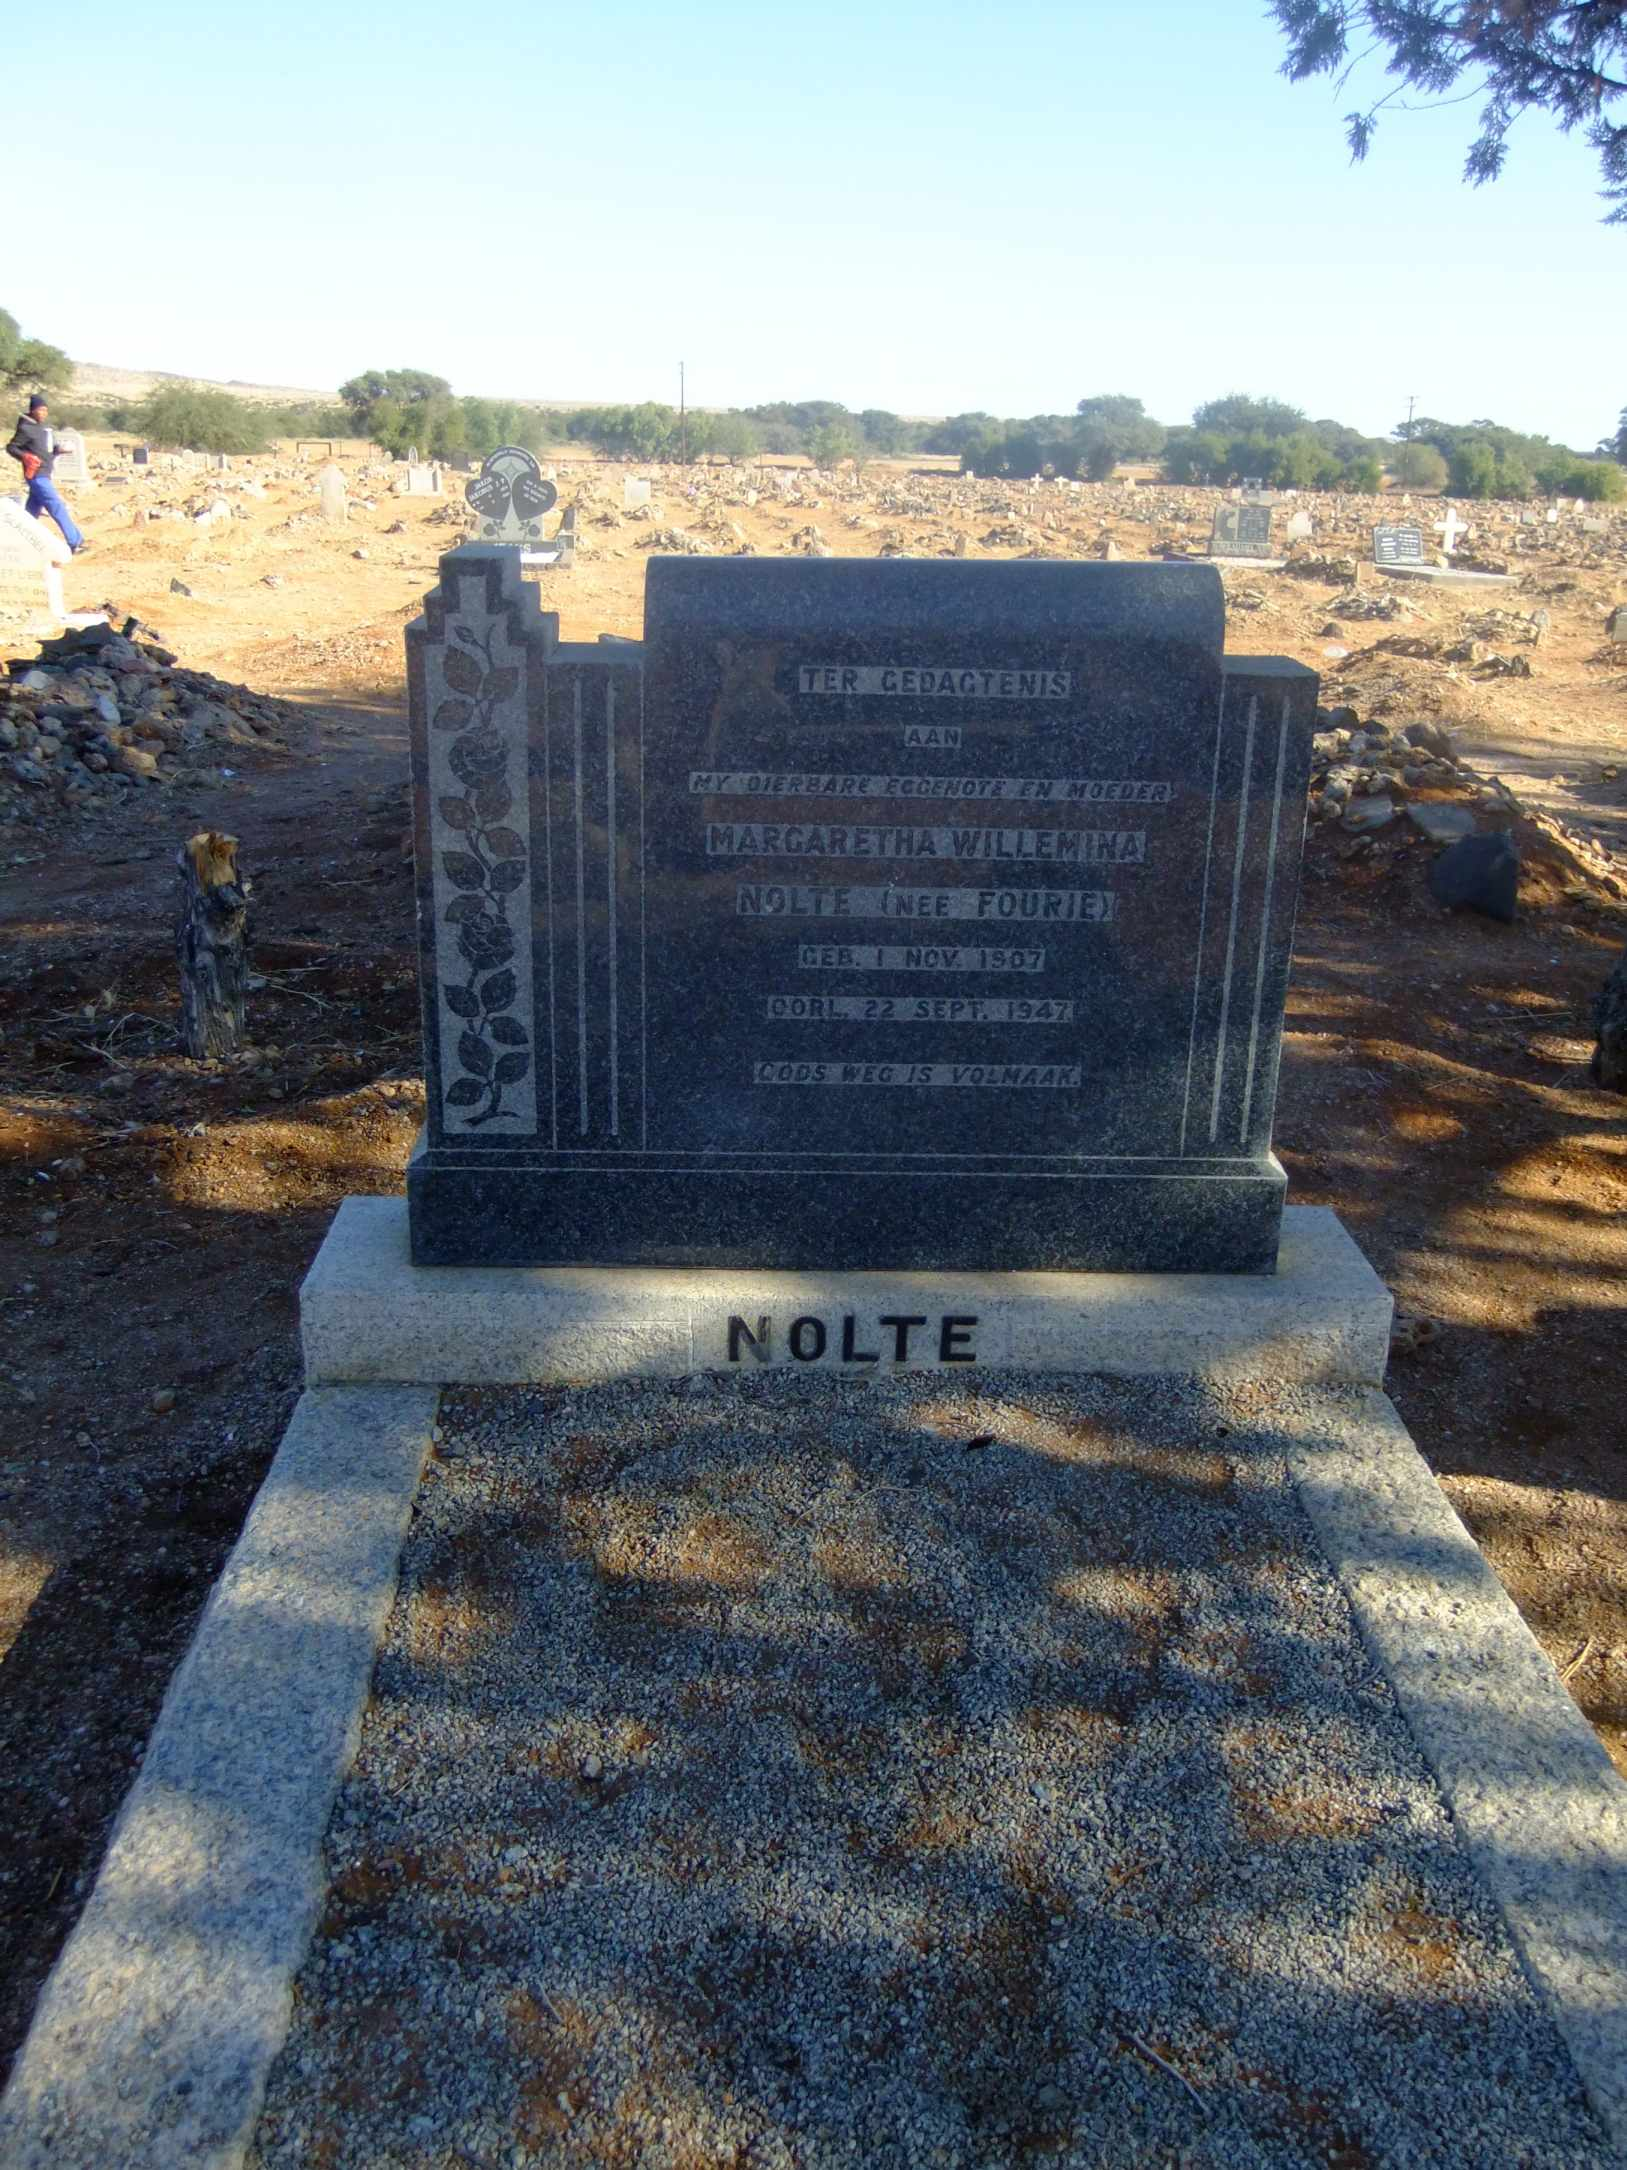 Nolte, Margaretha Willemina nee Fourie born 01 November 1907 died 22 September 1947